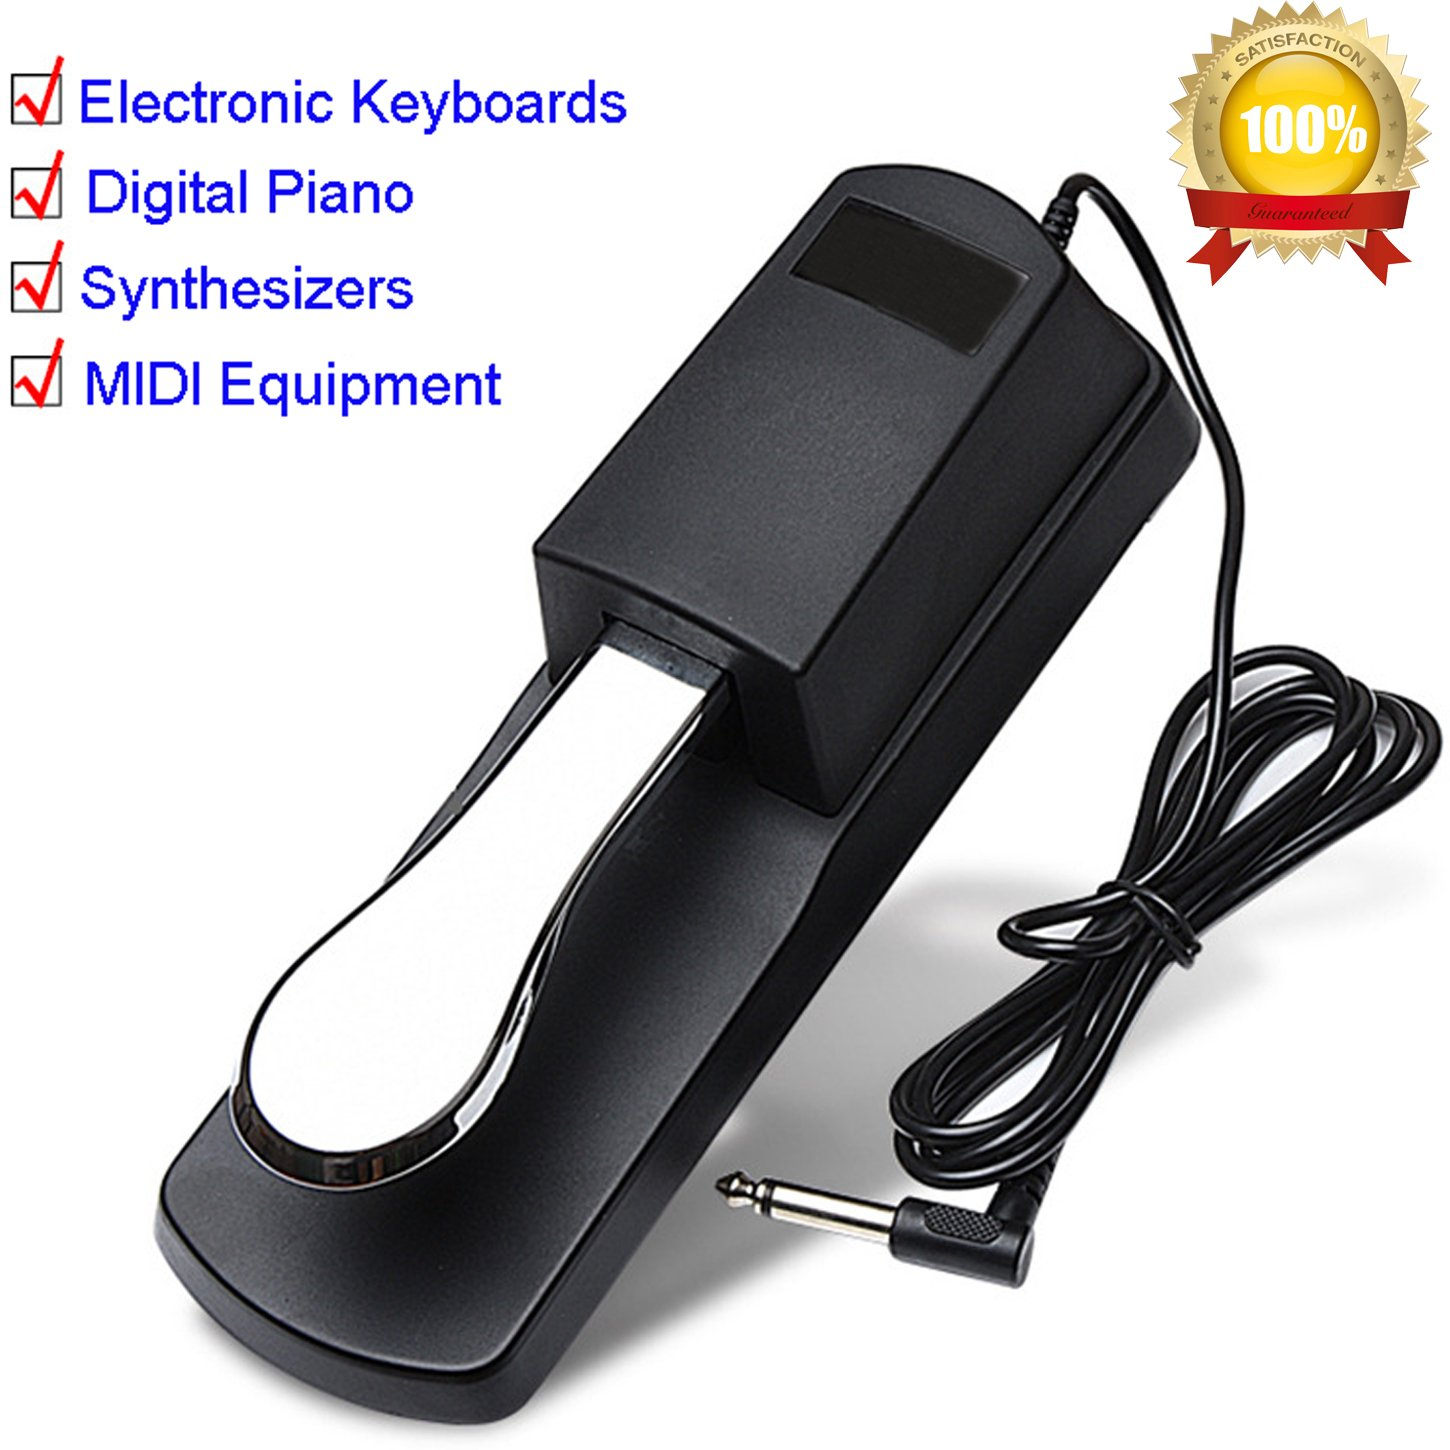 Sustain Pedal Foot Pedal Keyboard Piano MIDI Drum Machines Universal Metal Parts (Black)